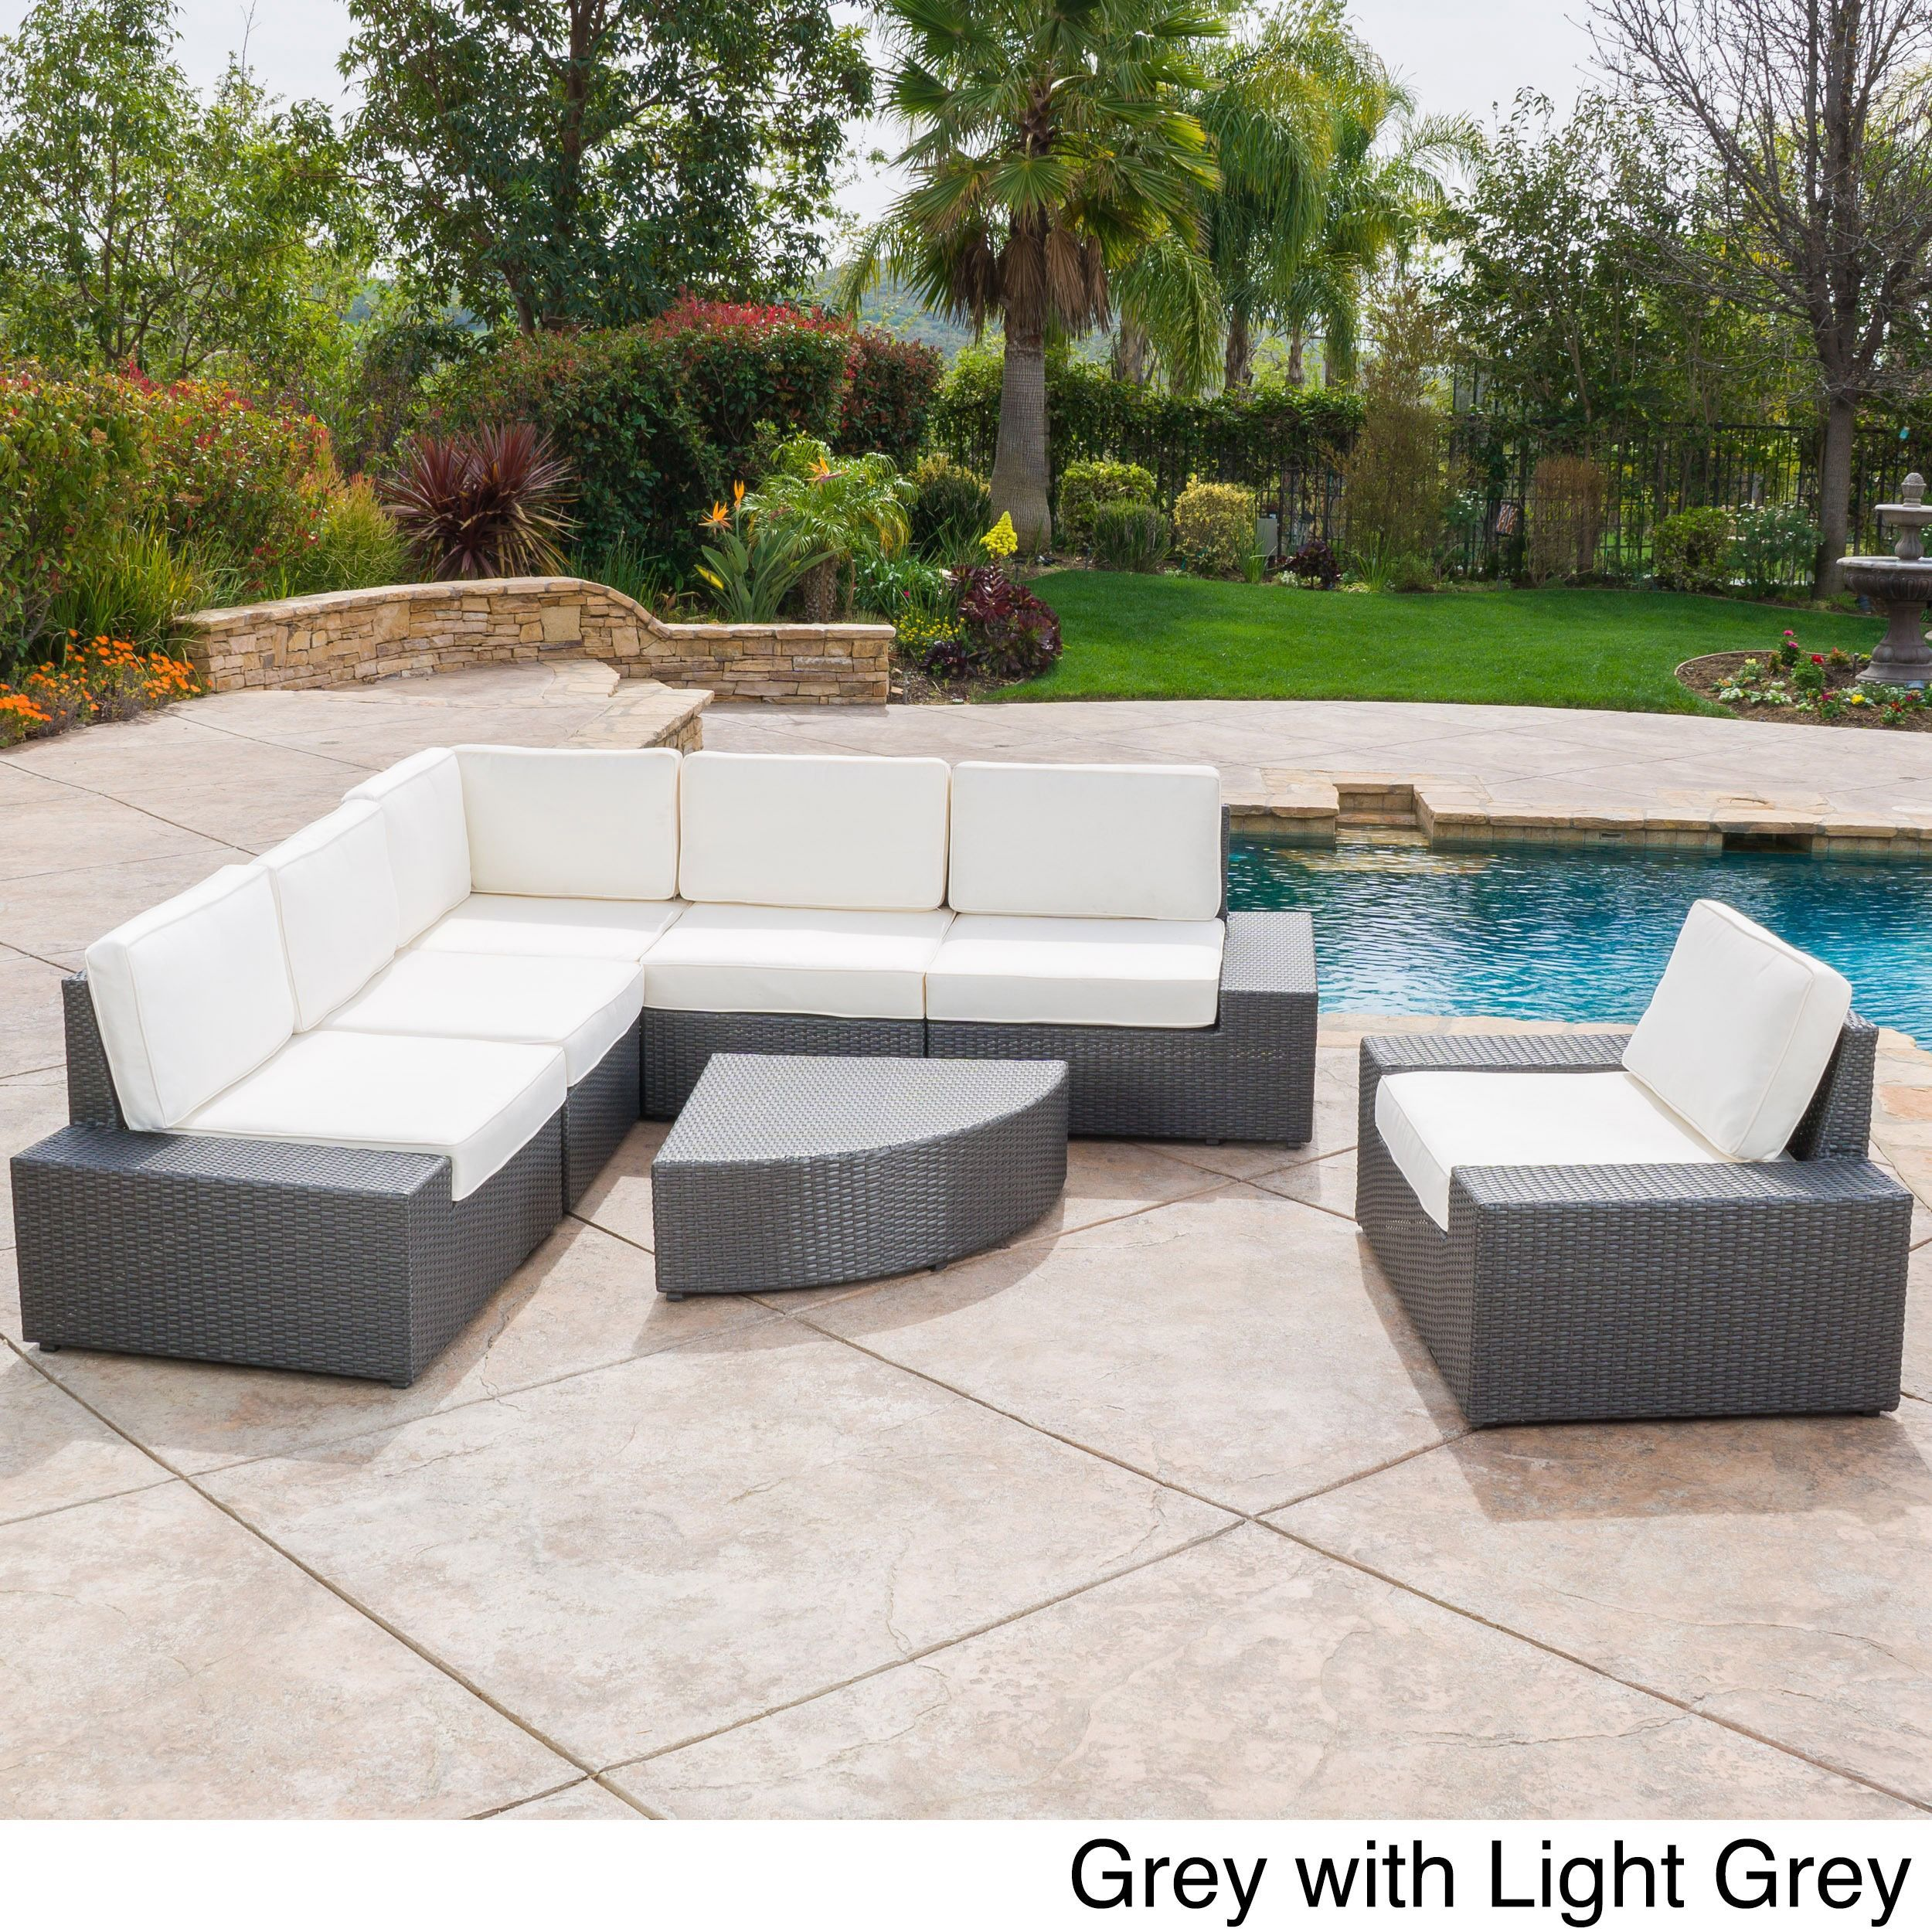 Santa Cruz Outdoor 7 Piece Wicker Sofa Set With Cushions By Christopher  Knight Home (Grey With Light Grey), Size 7 Piece Sets, Patio Furniture  (Fabric)